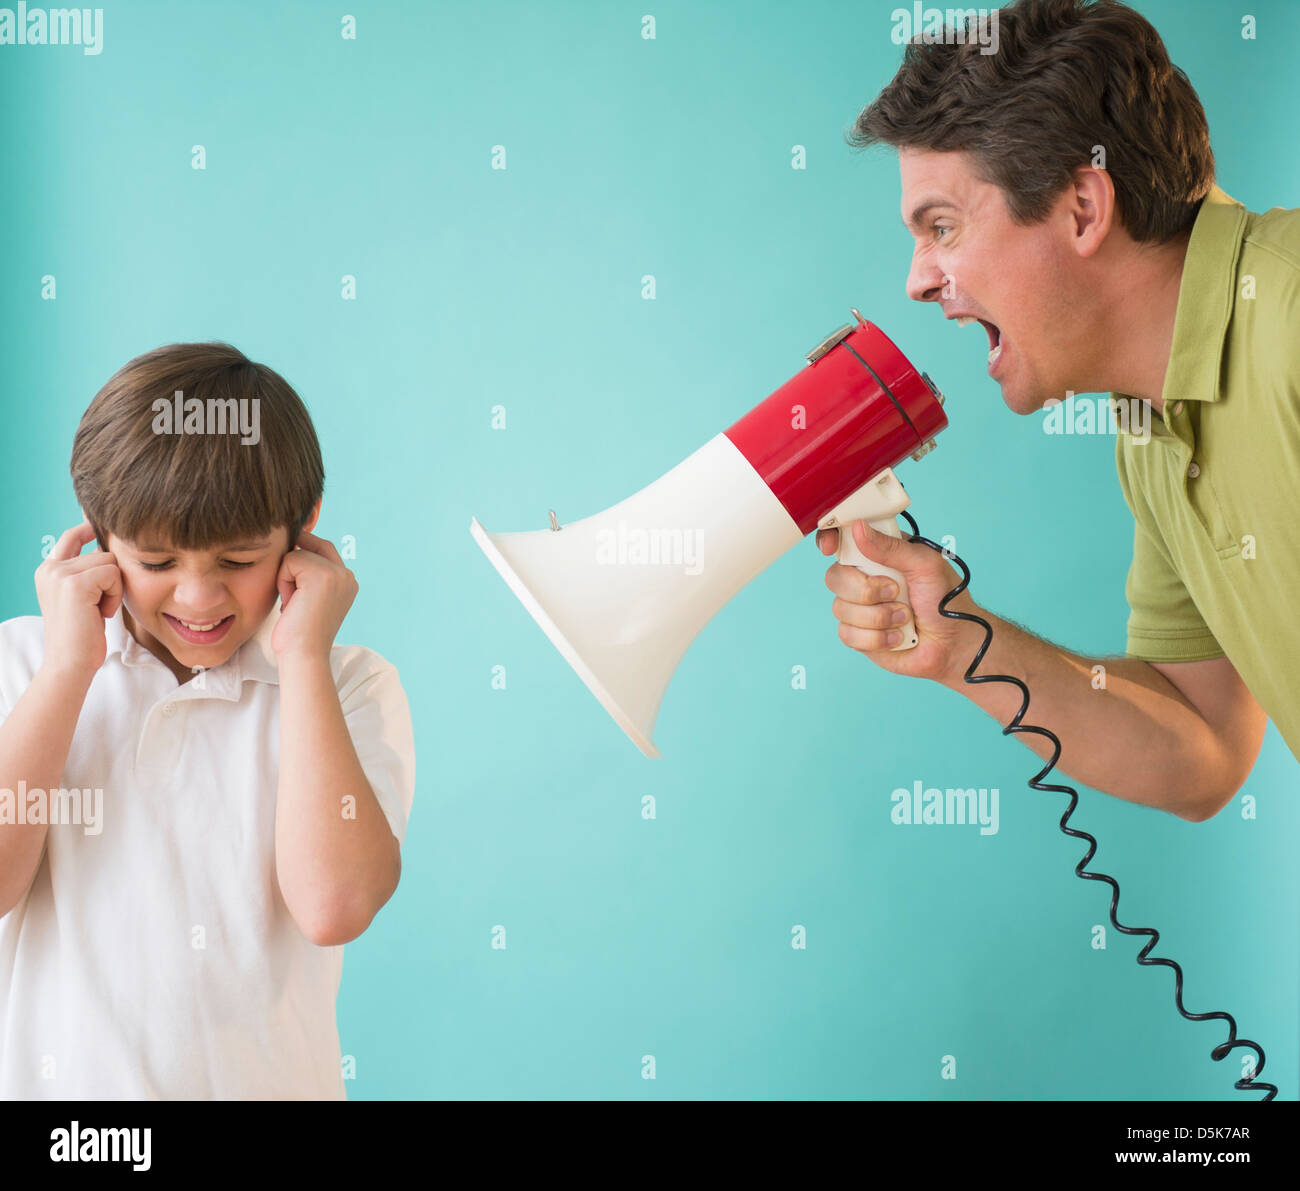 Father with megaphone yelling at son (8-9) - Stock Image